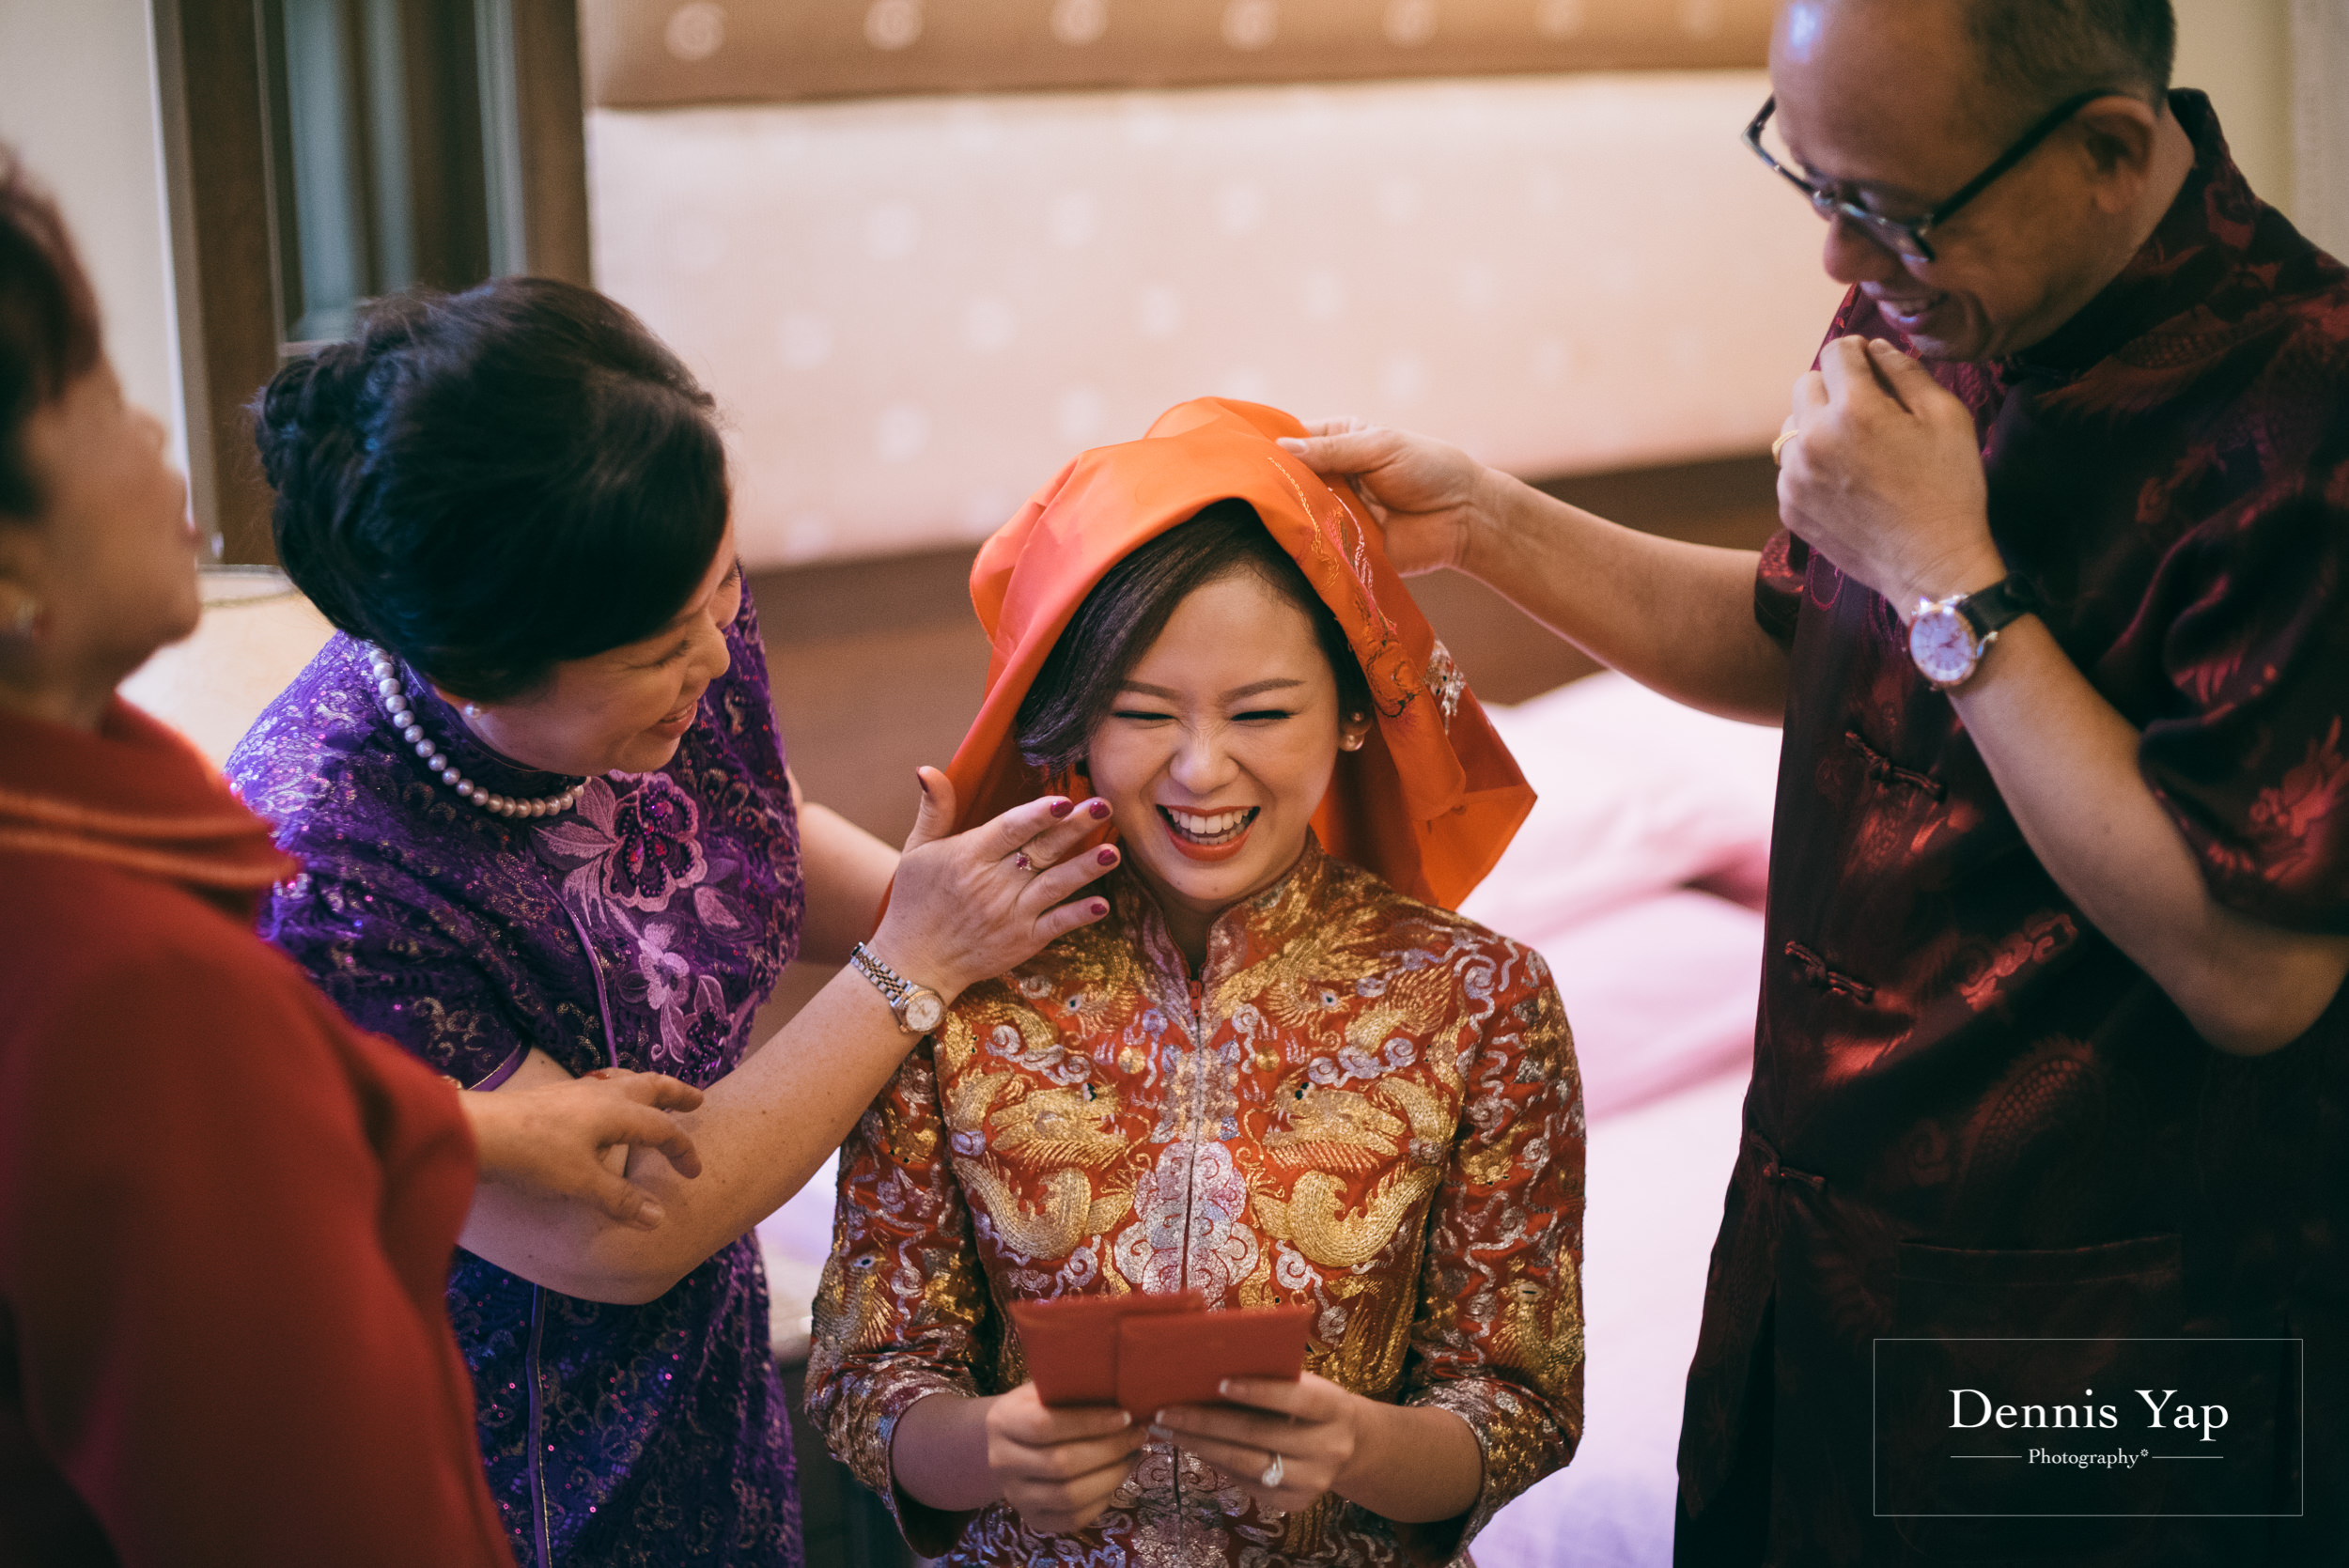 edmond erica tea ceremony kuala lumpur dennis yap photography chinese traditional happy-6.jpg